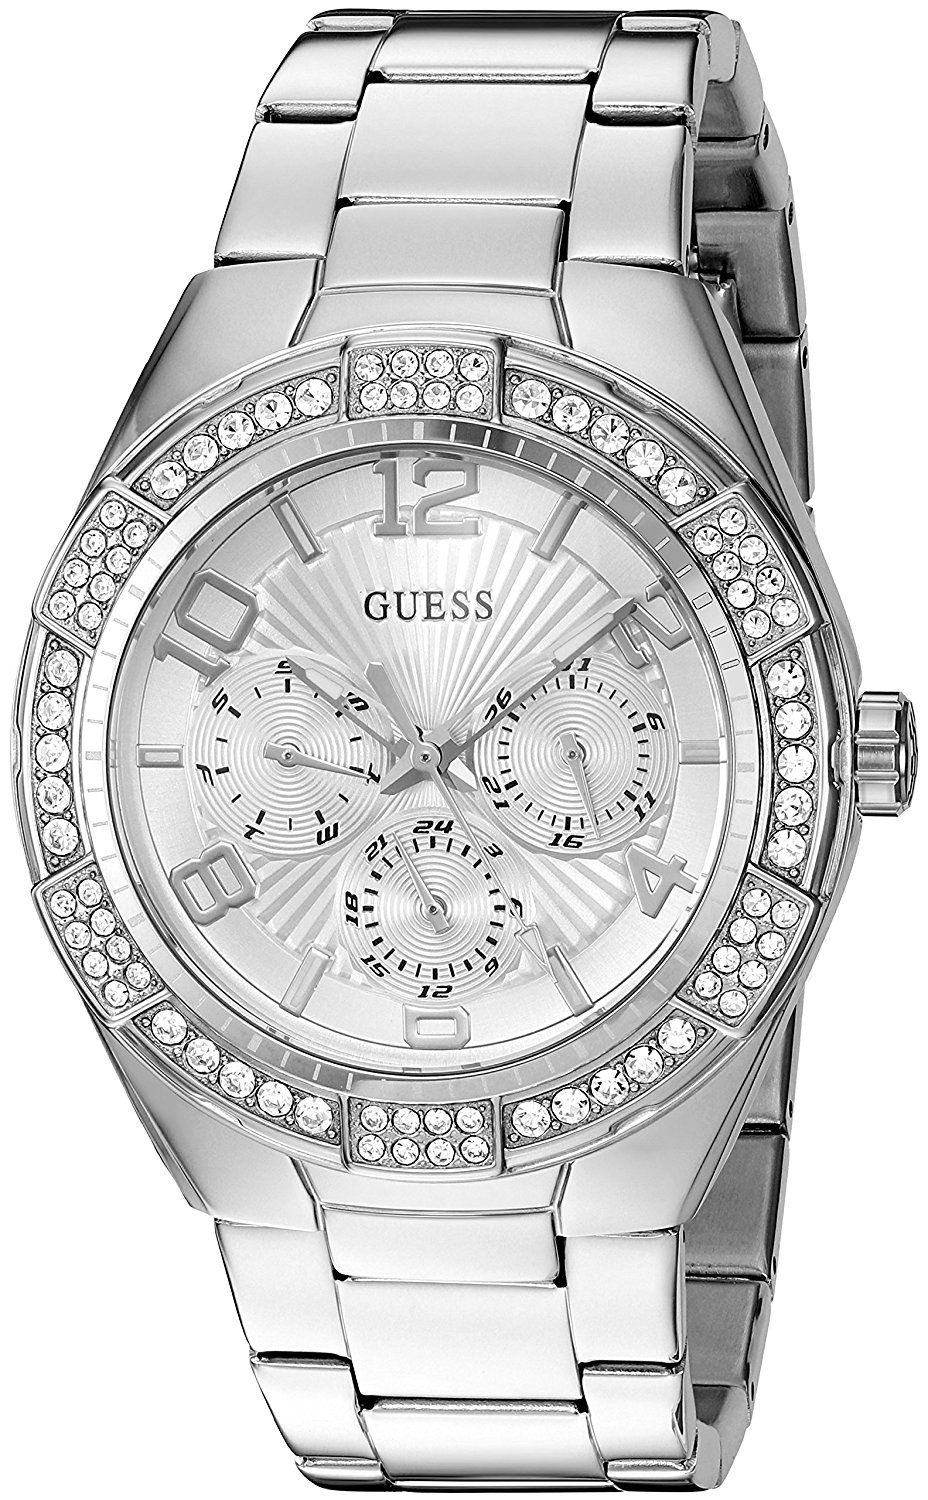 GUESS Women's Quartz Stainless Steel Automatic Watch